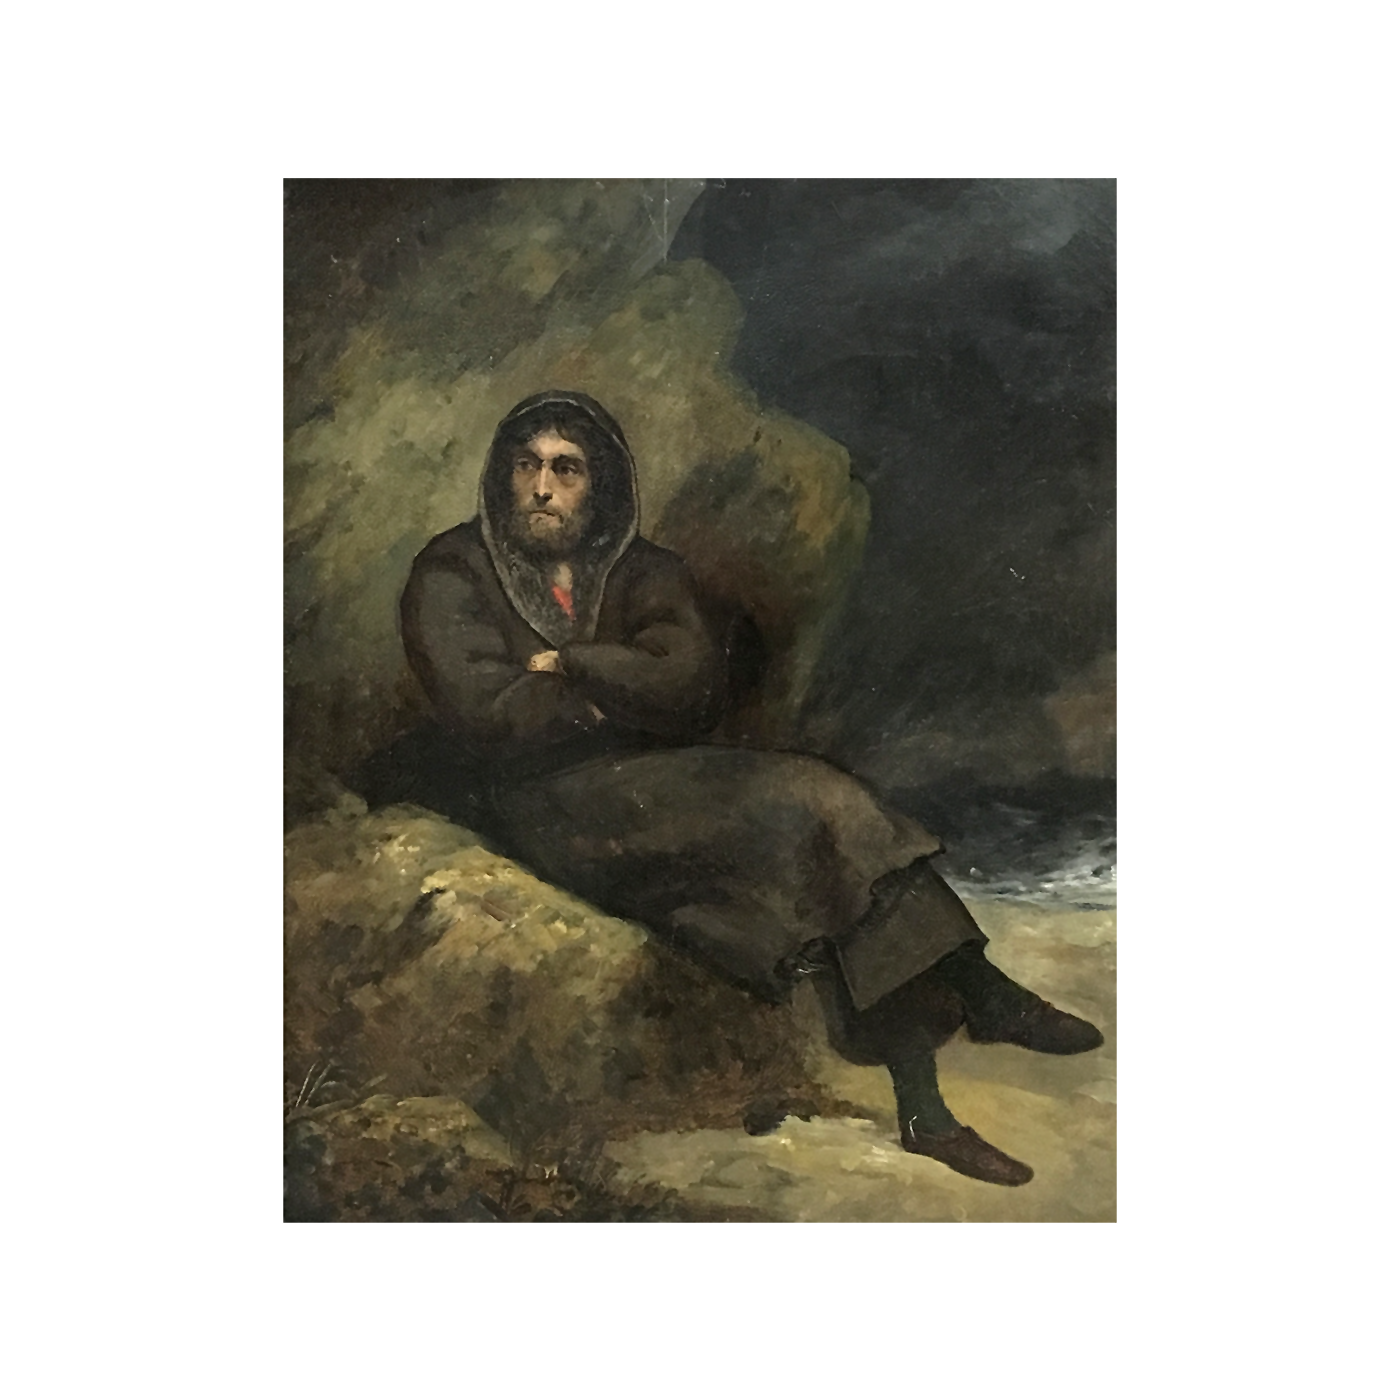 """Emile Jean Horace Vernet [1789 - 1863] French Artist """"Waiting for the Storm"""" circa 1840"""